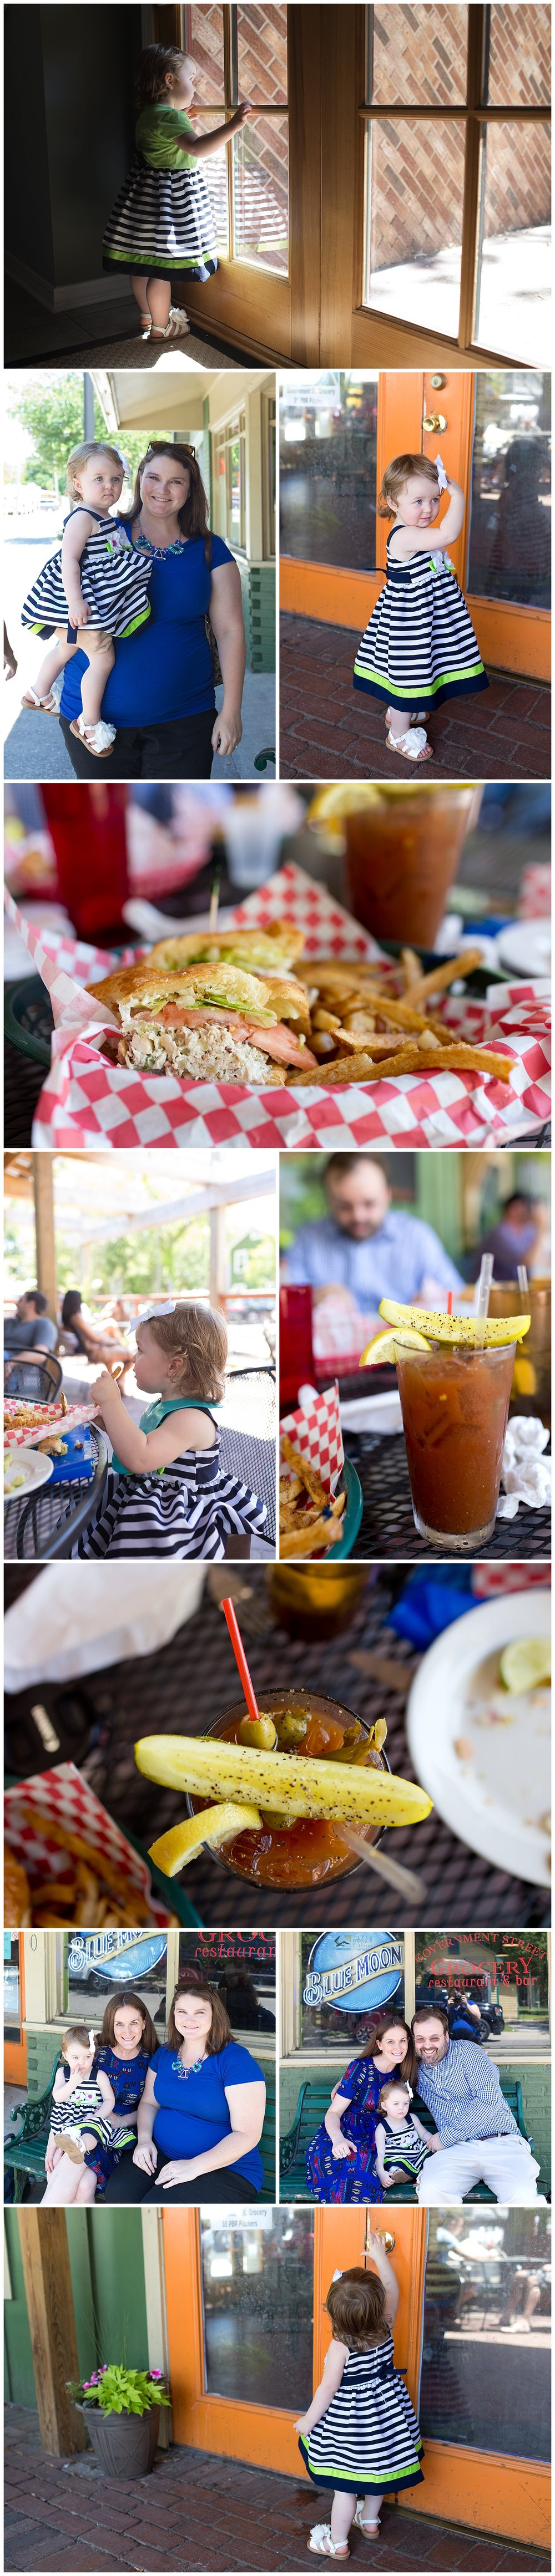 family lunch at Government Street Grocery in Ocean Springs (chicken salad sandwich and bloody Mary)